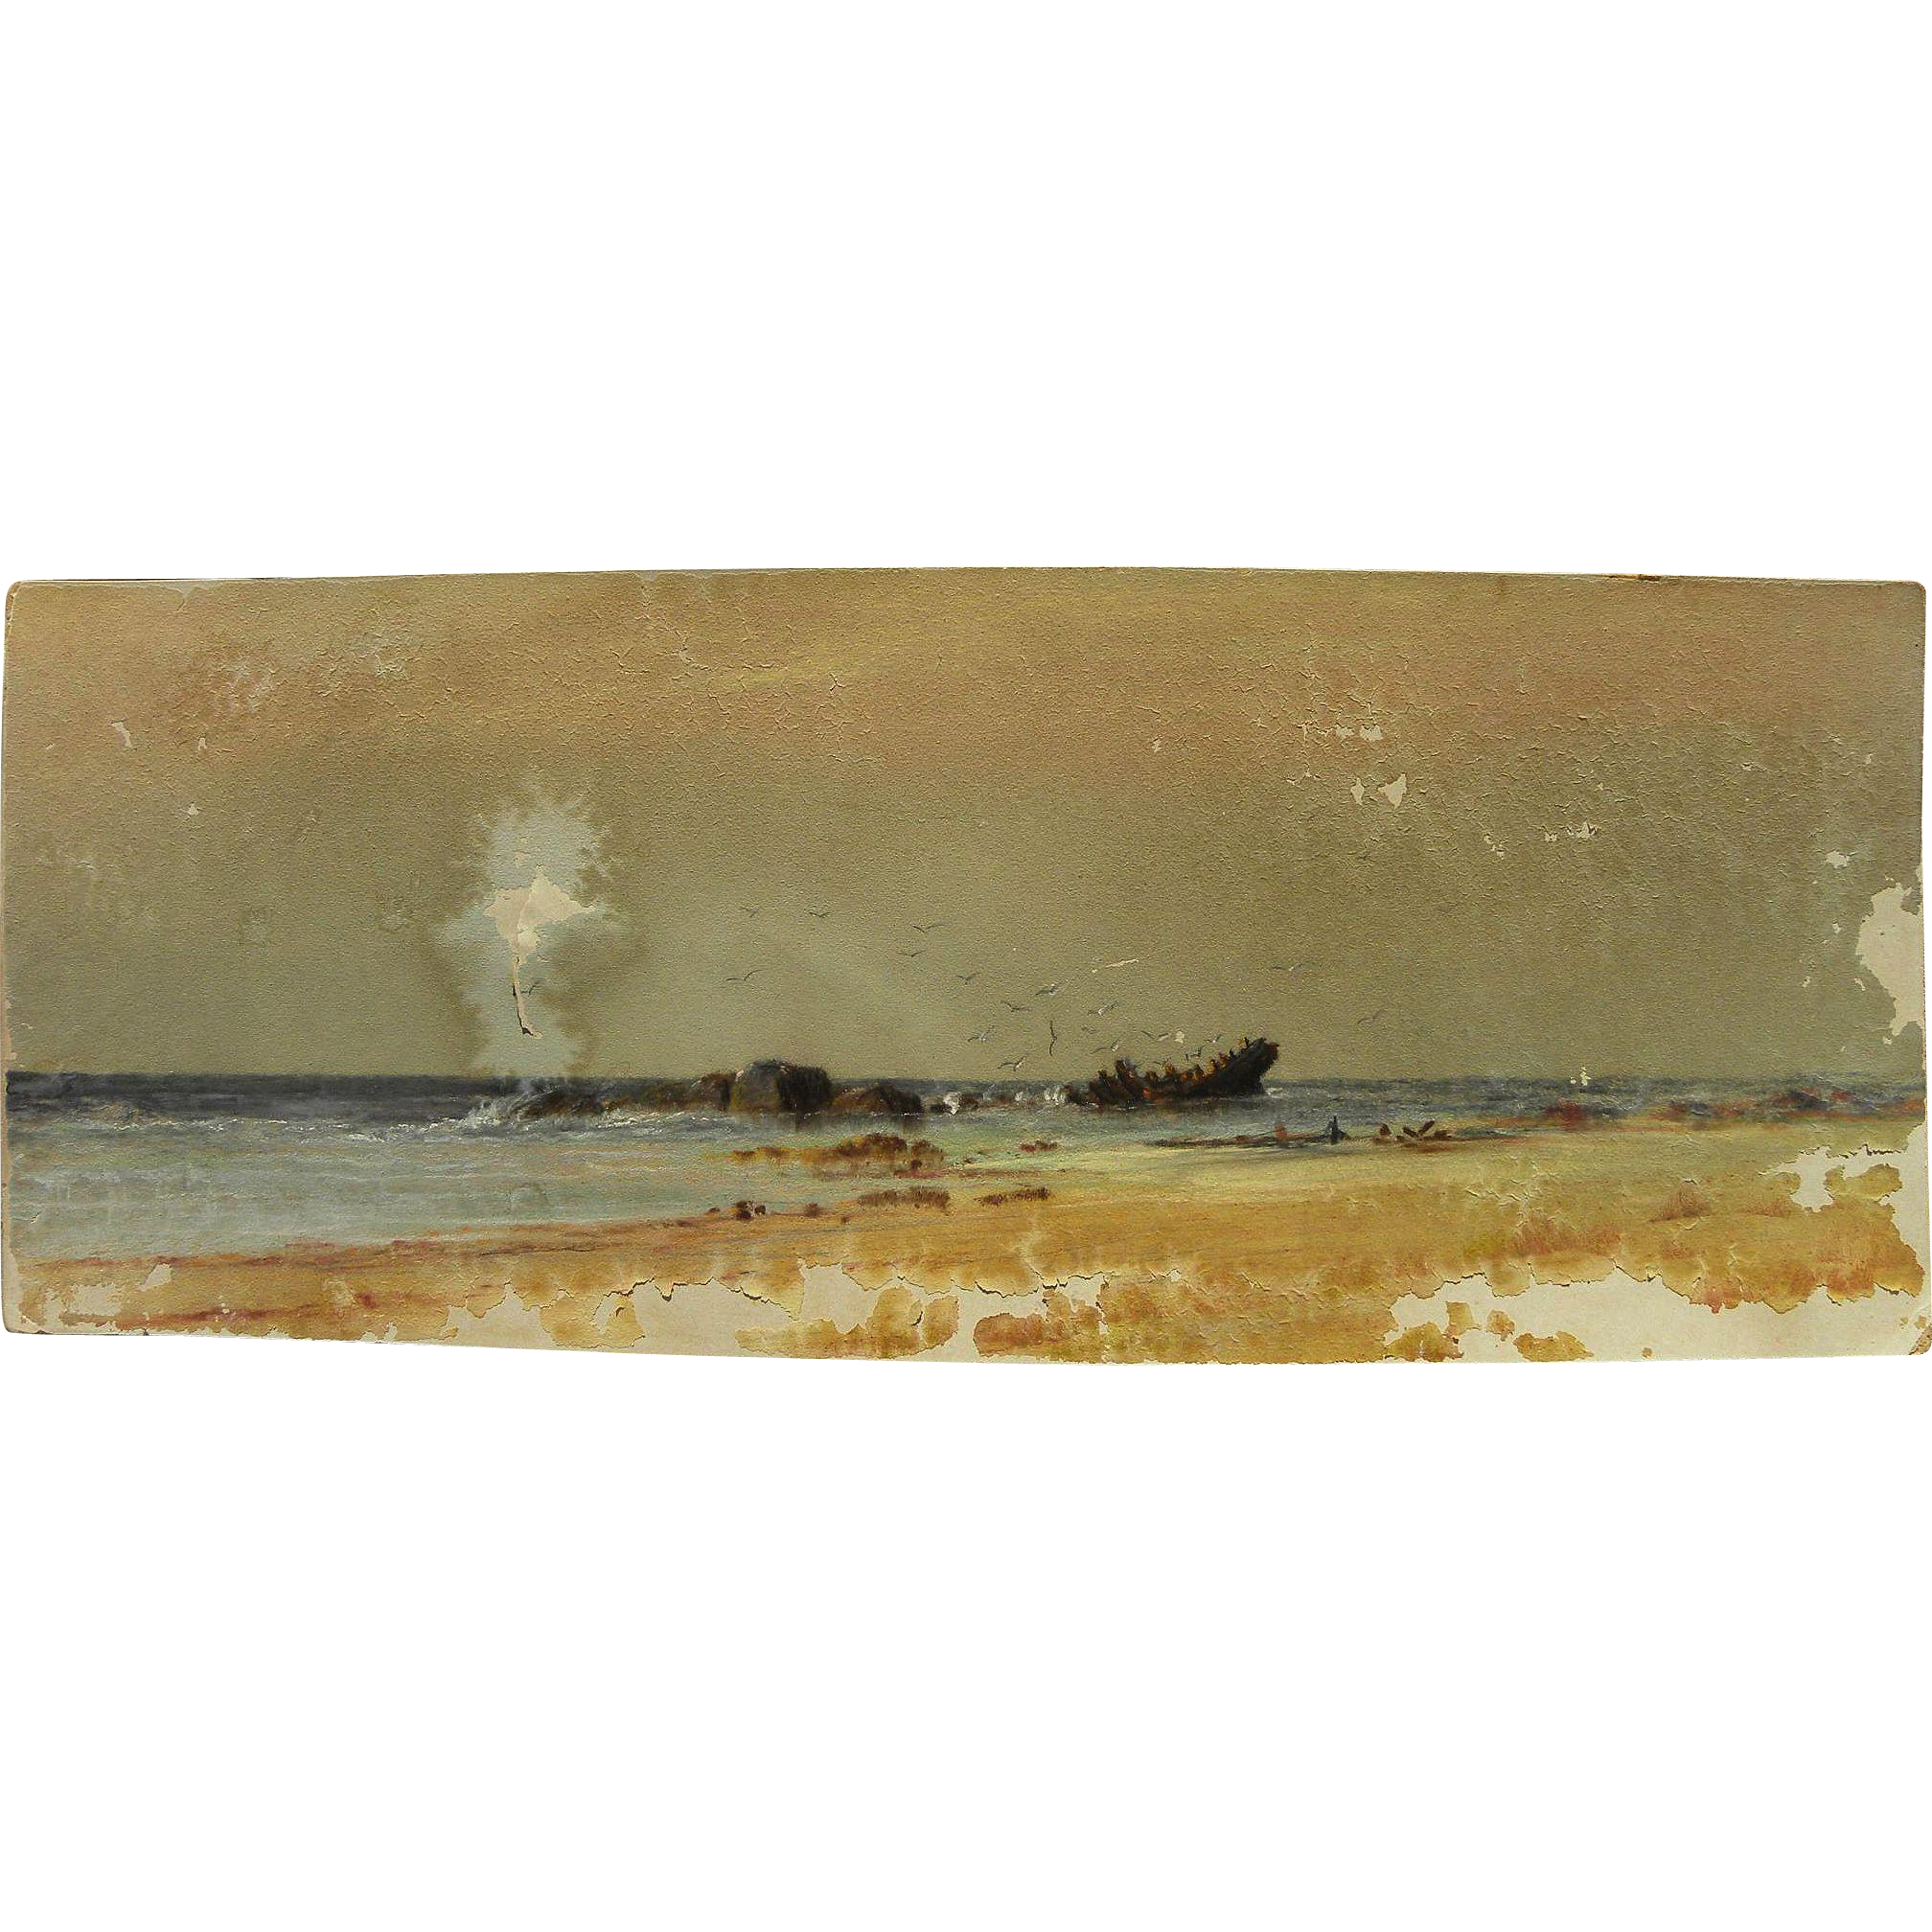 American pastel drawing of wreck on a coastline possibly by Alfred Thompson Bricher (1837-1908) as-is condition